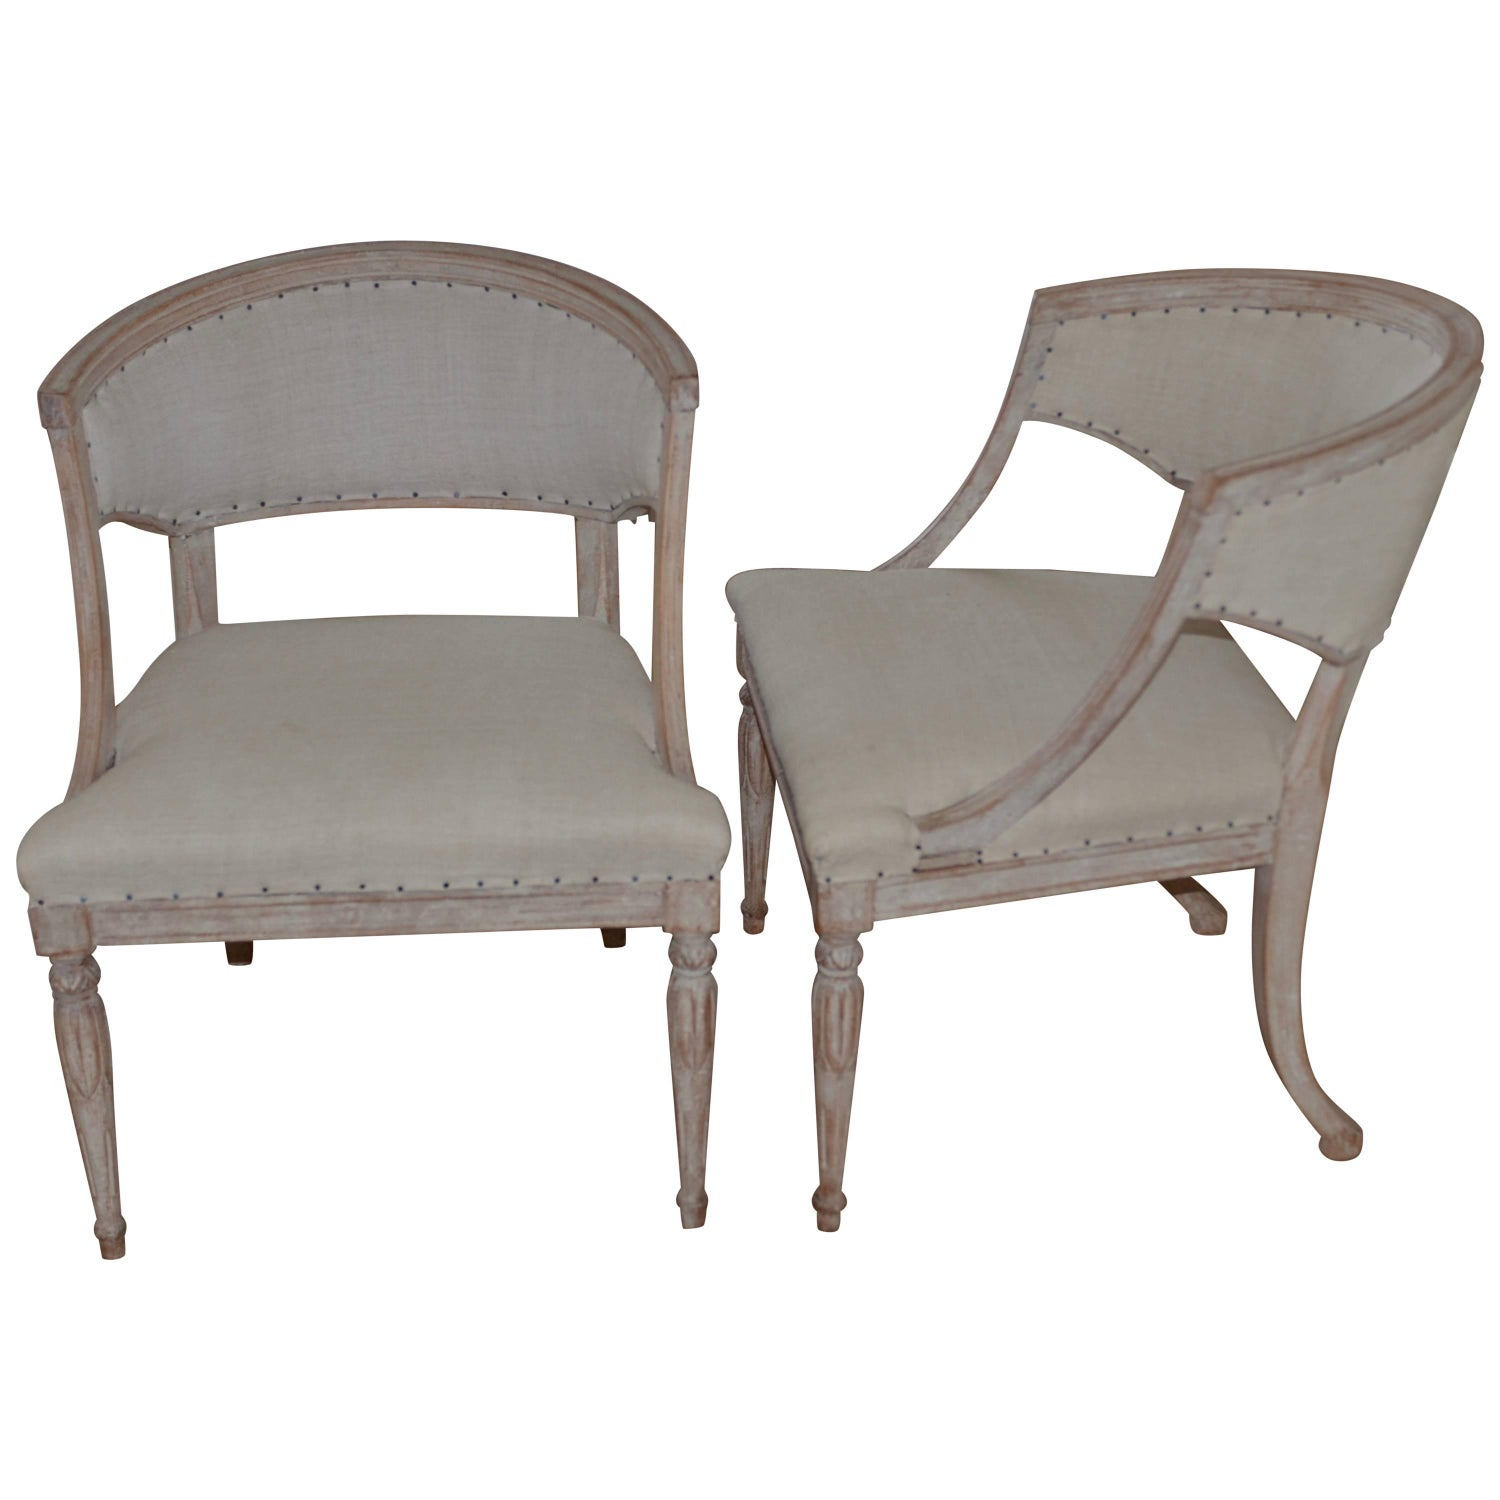 pair of th century swedish barrel back chairs. barrel chairs   for sale on stdibs